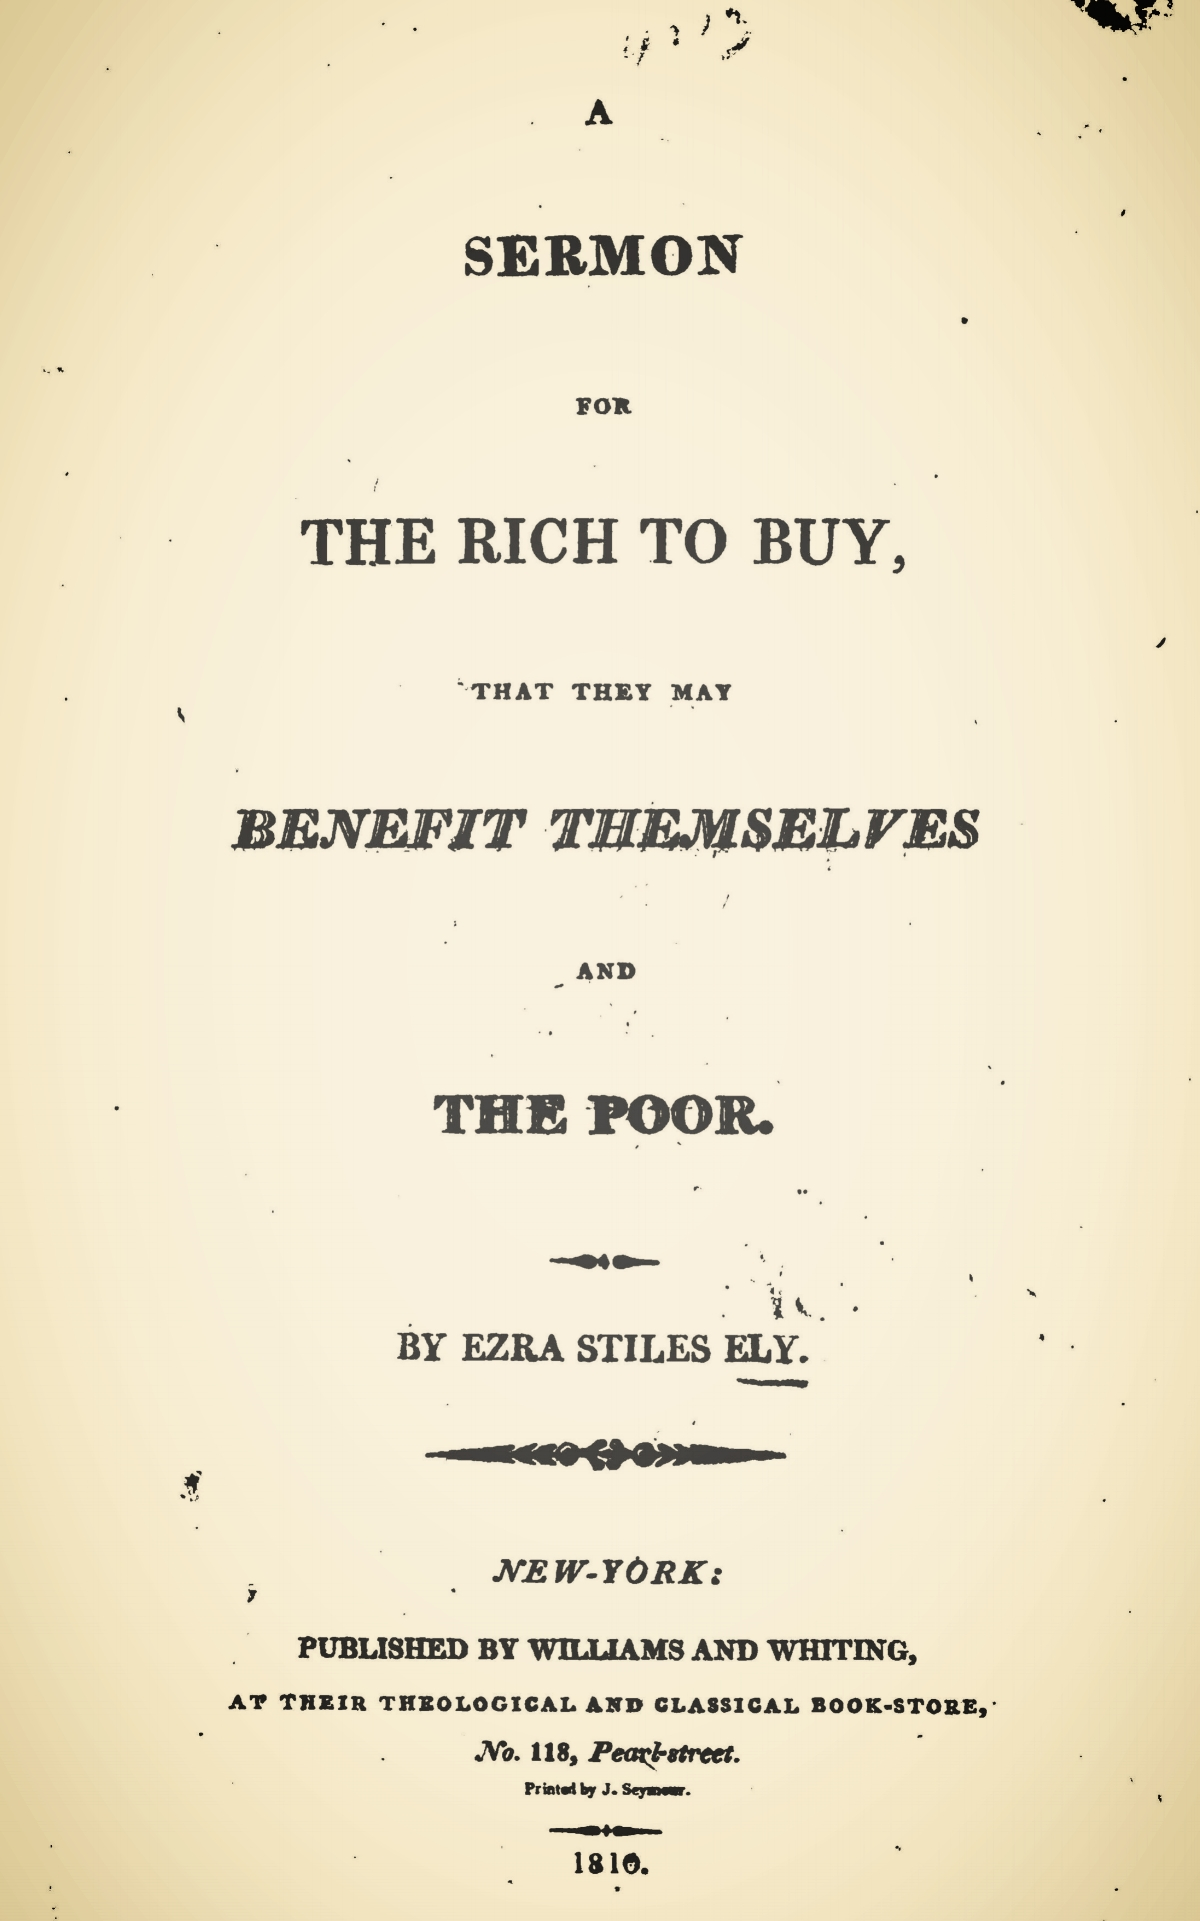 Ely, Ezra Stiles, A Sermon for the Rich to Buy Title Page.jpg